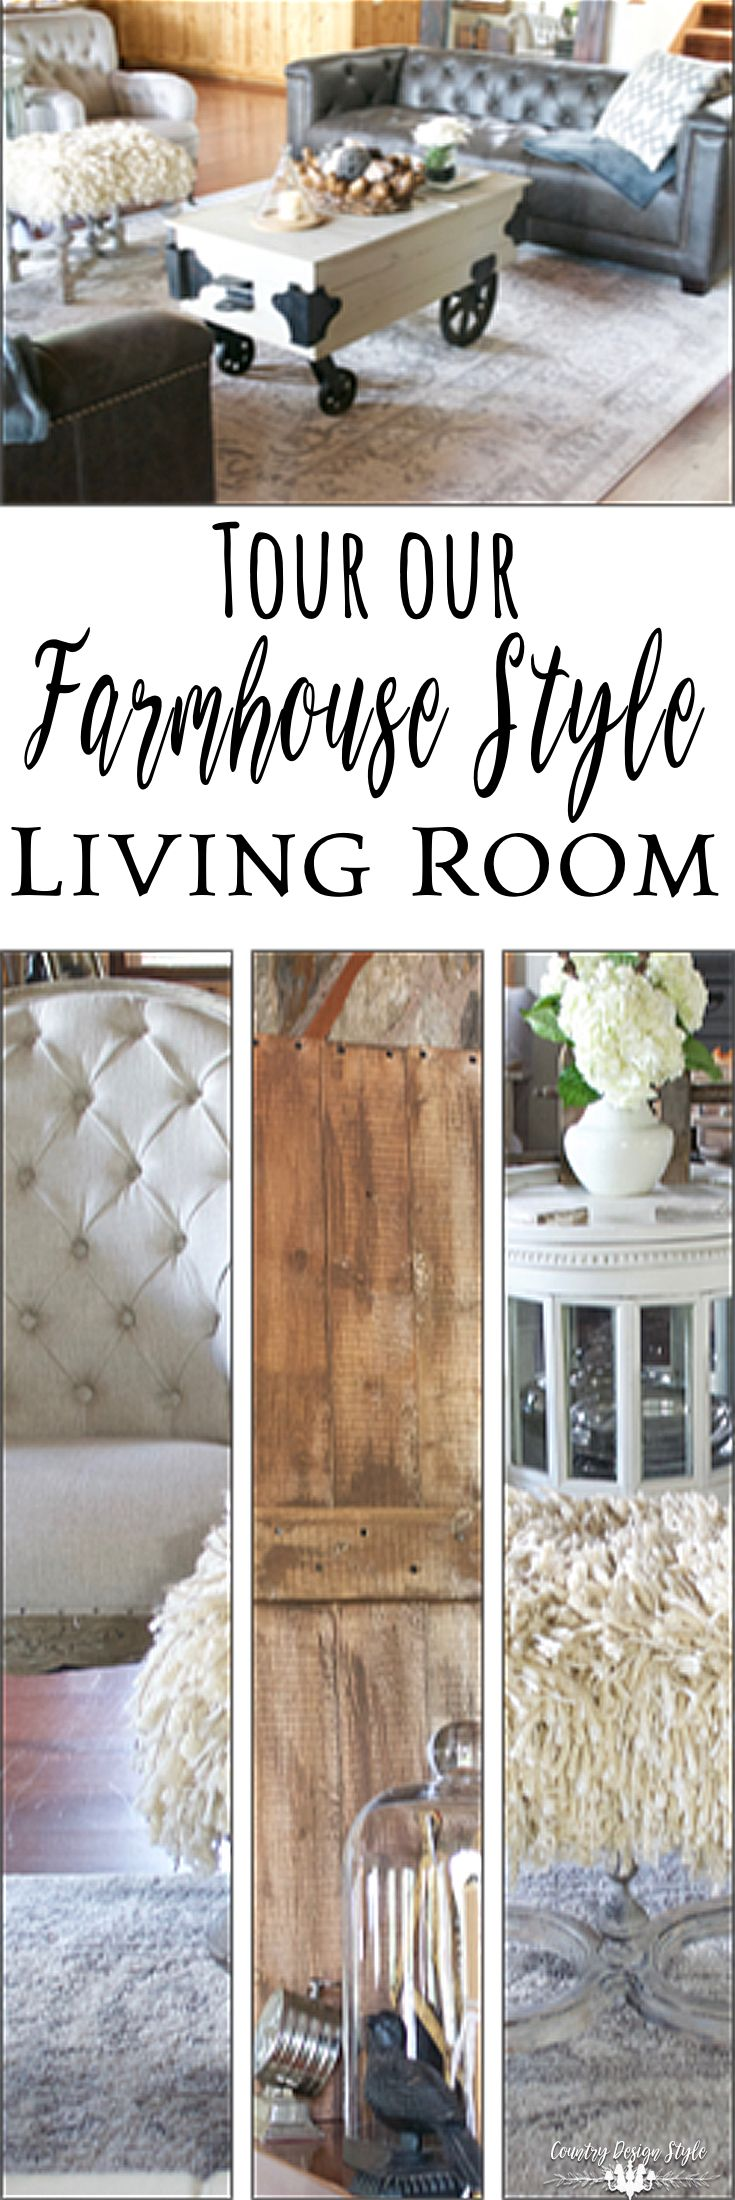 78 Best Images About Country Design Style On Pinterest Industrial Farmhouse Workshop And